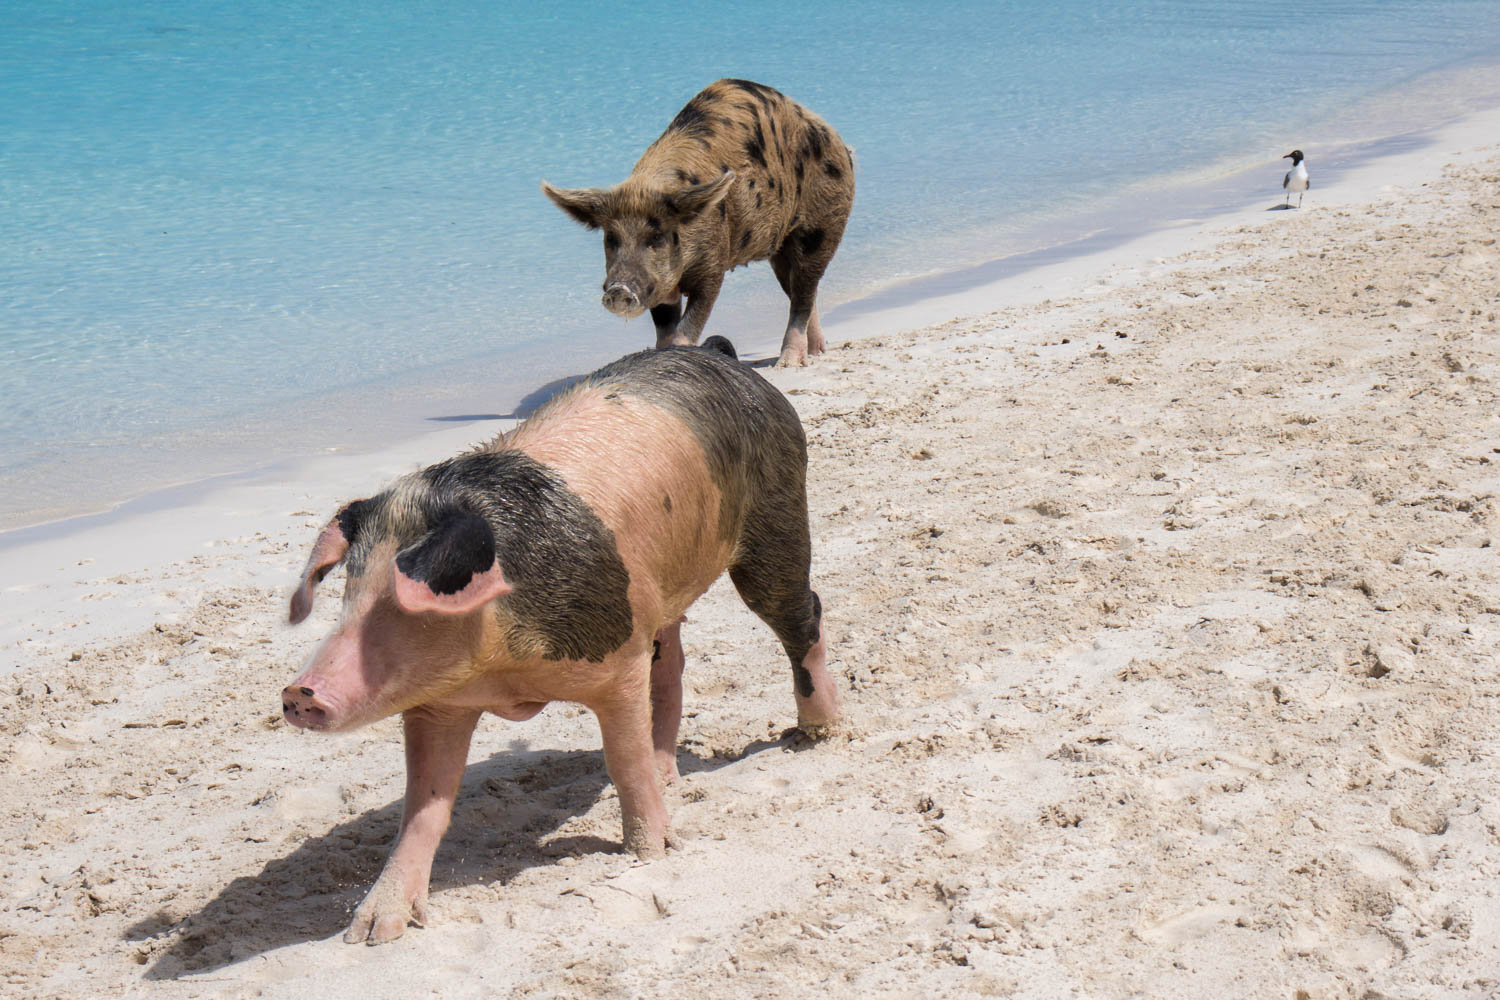 Pig Island is the most visited place in the Bahamas. Pig Beach excusion from Nassau takes roughly thirty minutes by flight to see the Nassau swimming pigs. Shot on Nassau Bahamas shore excursions.